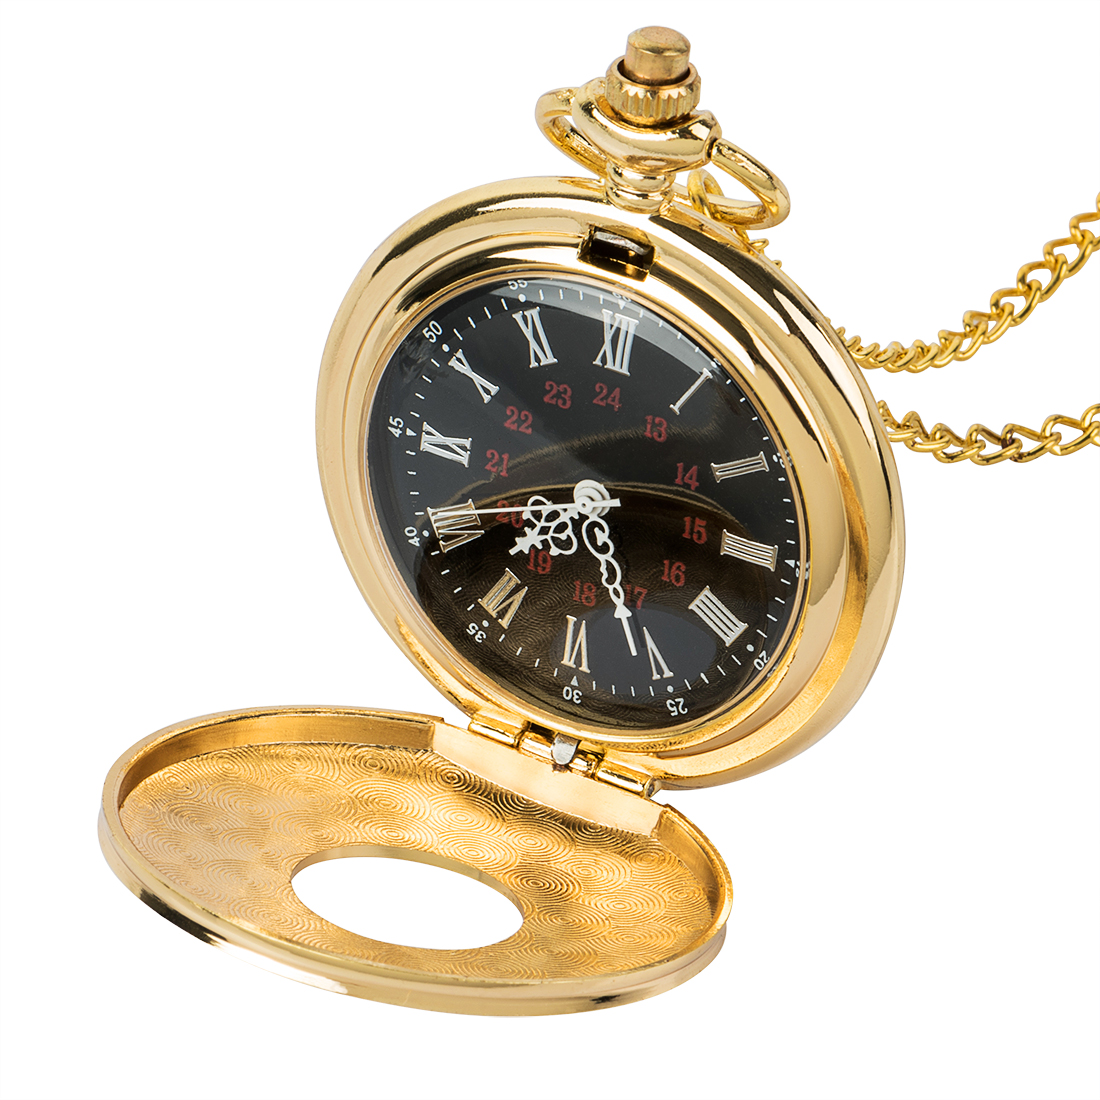 Golden Men Women Pocket Watch Full Double Hunter Mechanical Pocket Watches Engraved Roman Numerals Gold Hand Wind Pocketwatch(China)